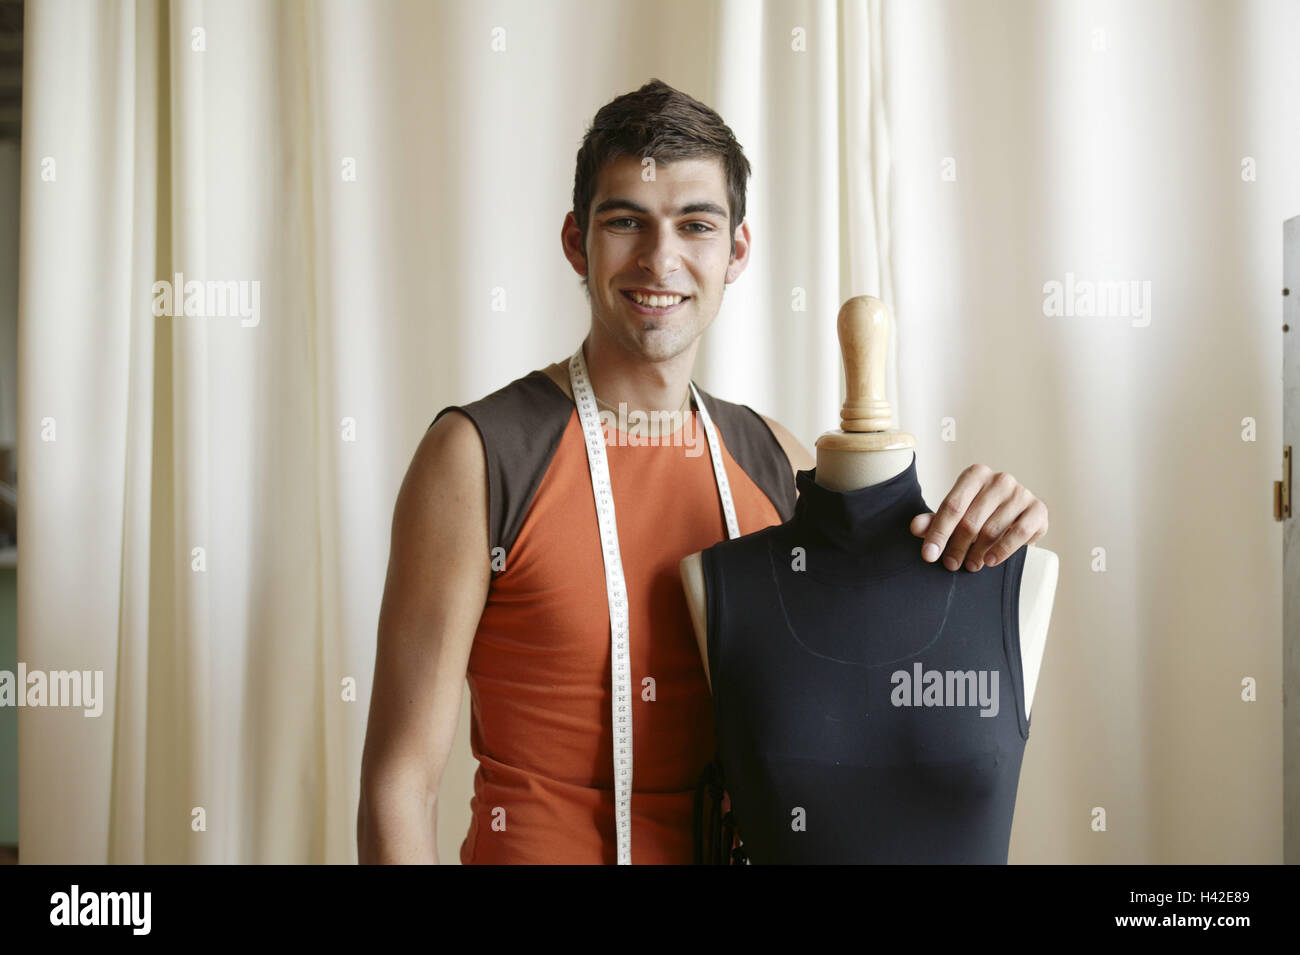 Man Young Tape Measure Dummy Half Portrait 20 30 Years Stock Photo Alamy